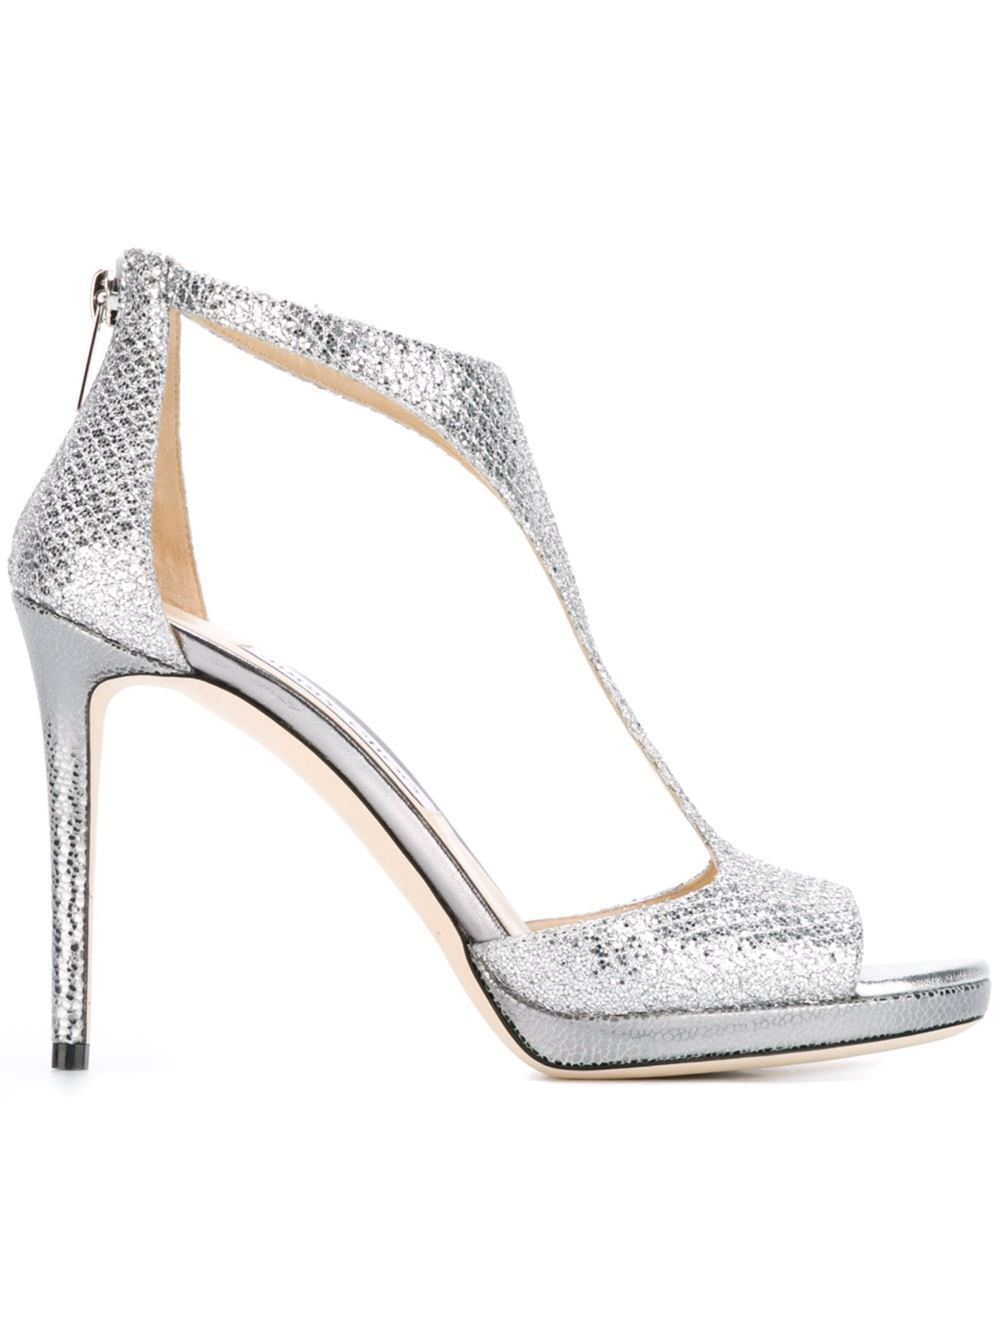 Jimmy Choo Lana 100 Glitter Sandals (38)